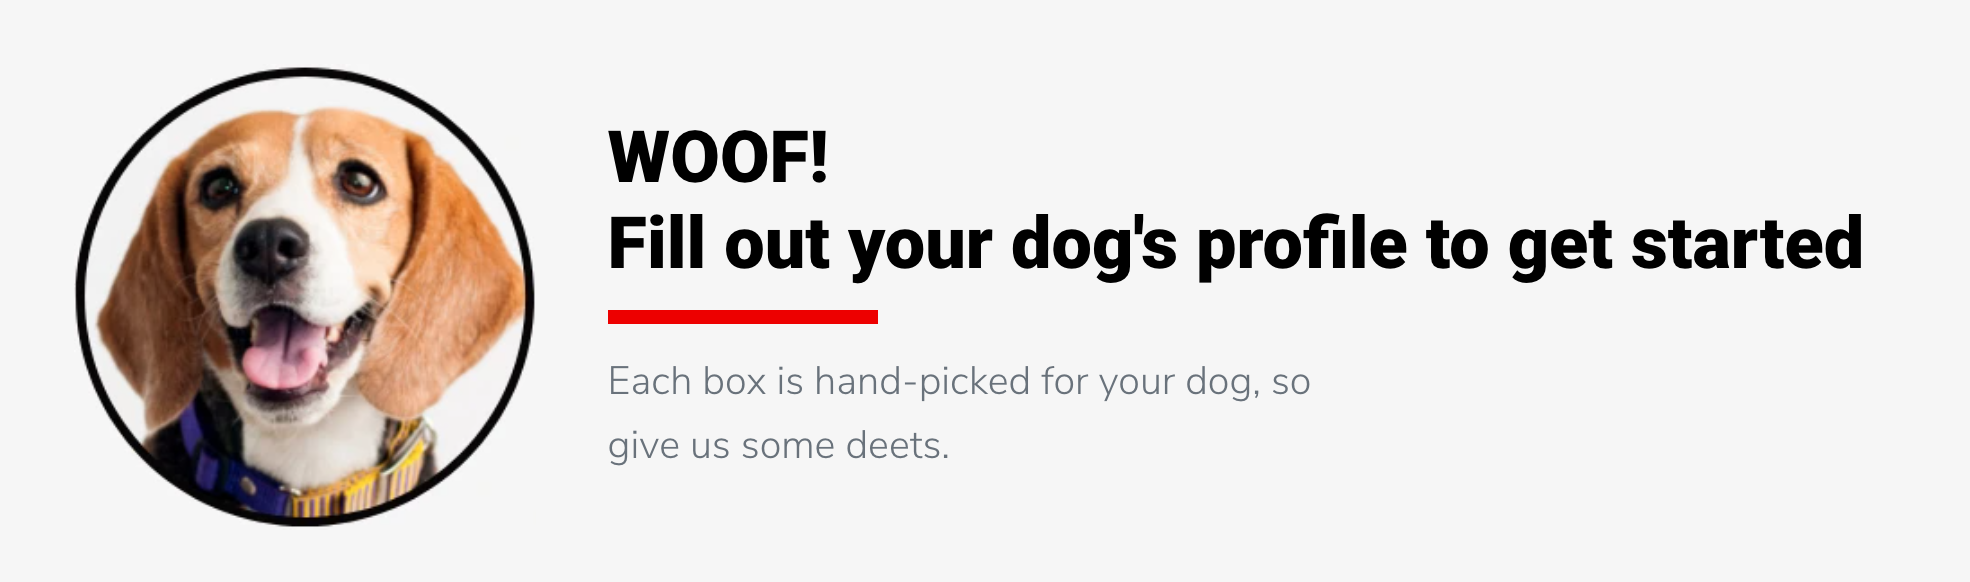 Dog and CTA to fill out your profile